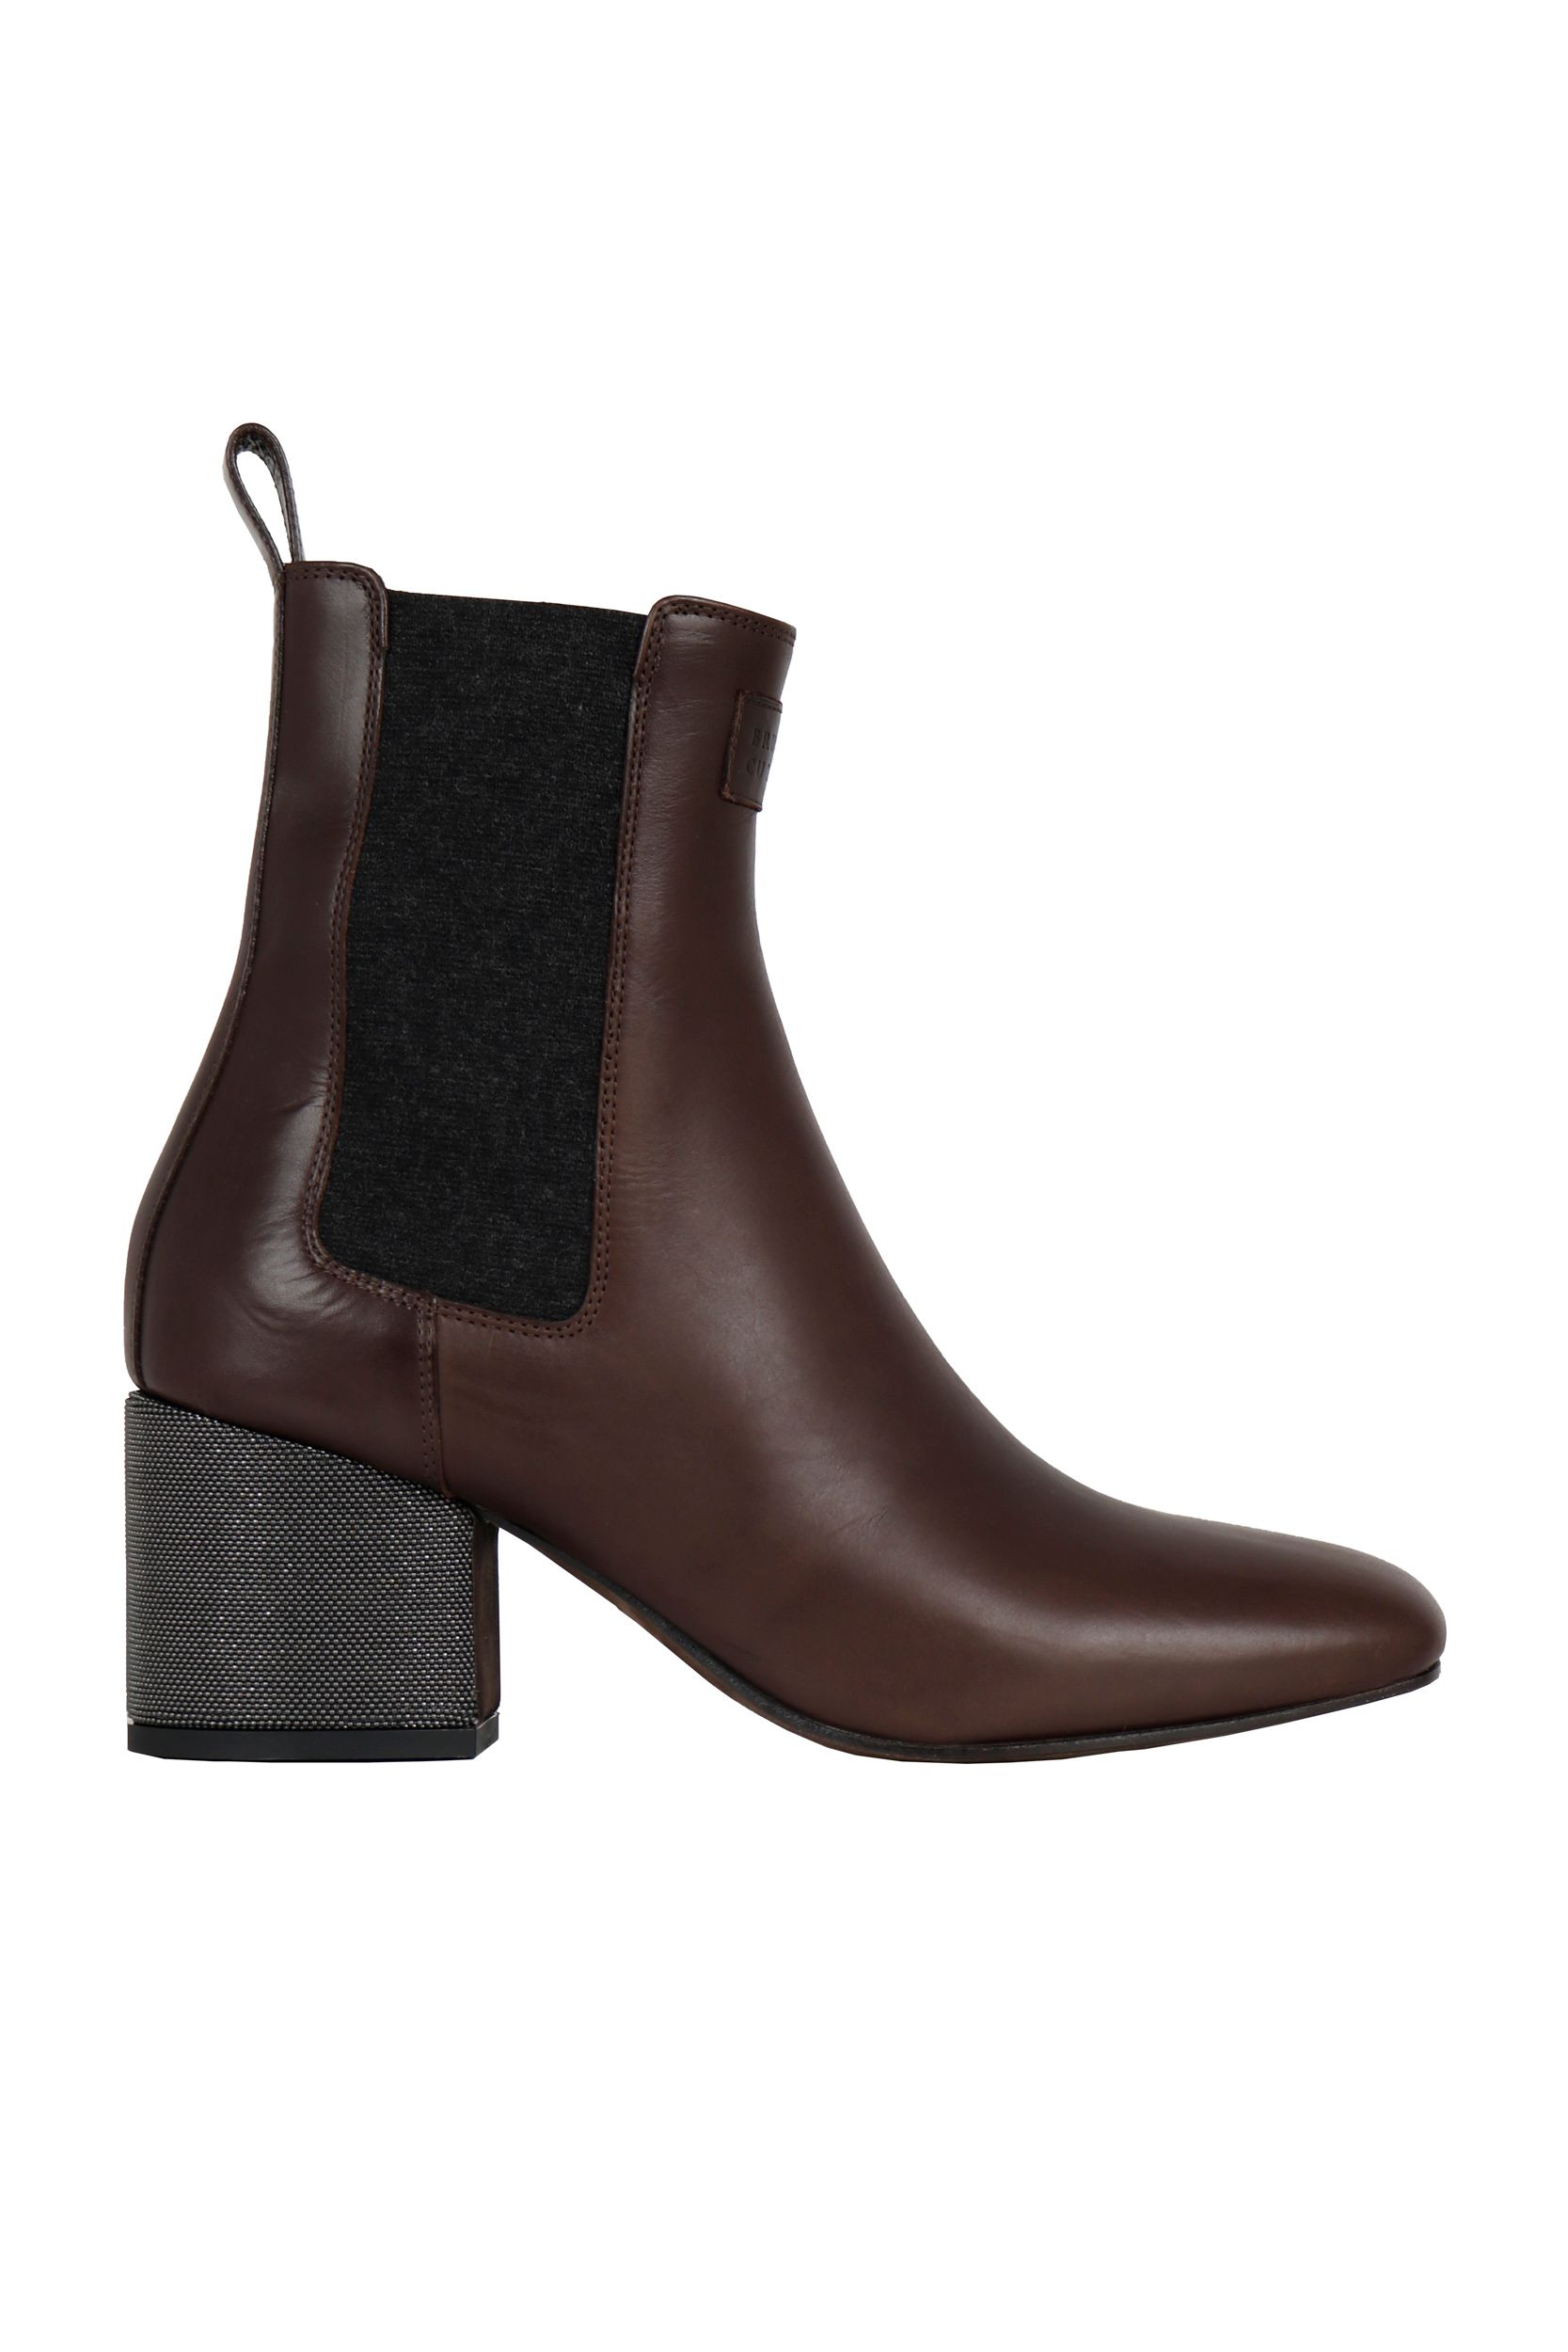 Brunello Cucinelli BRUNELLO CUCINELLI WOMEN'S BROWN LEATHER ANKLE BOOTS